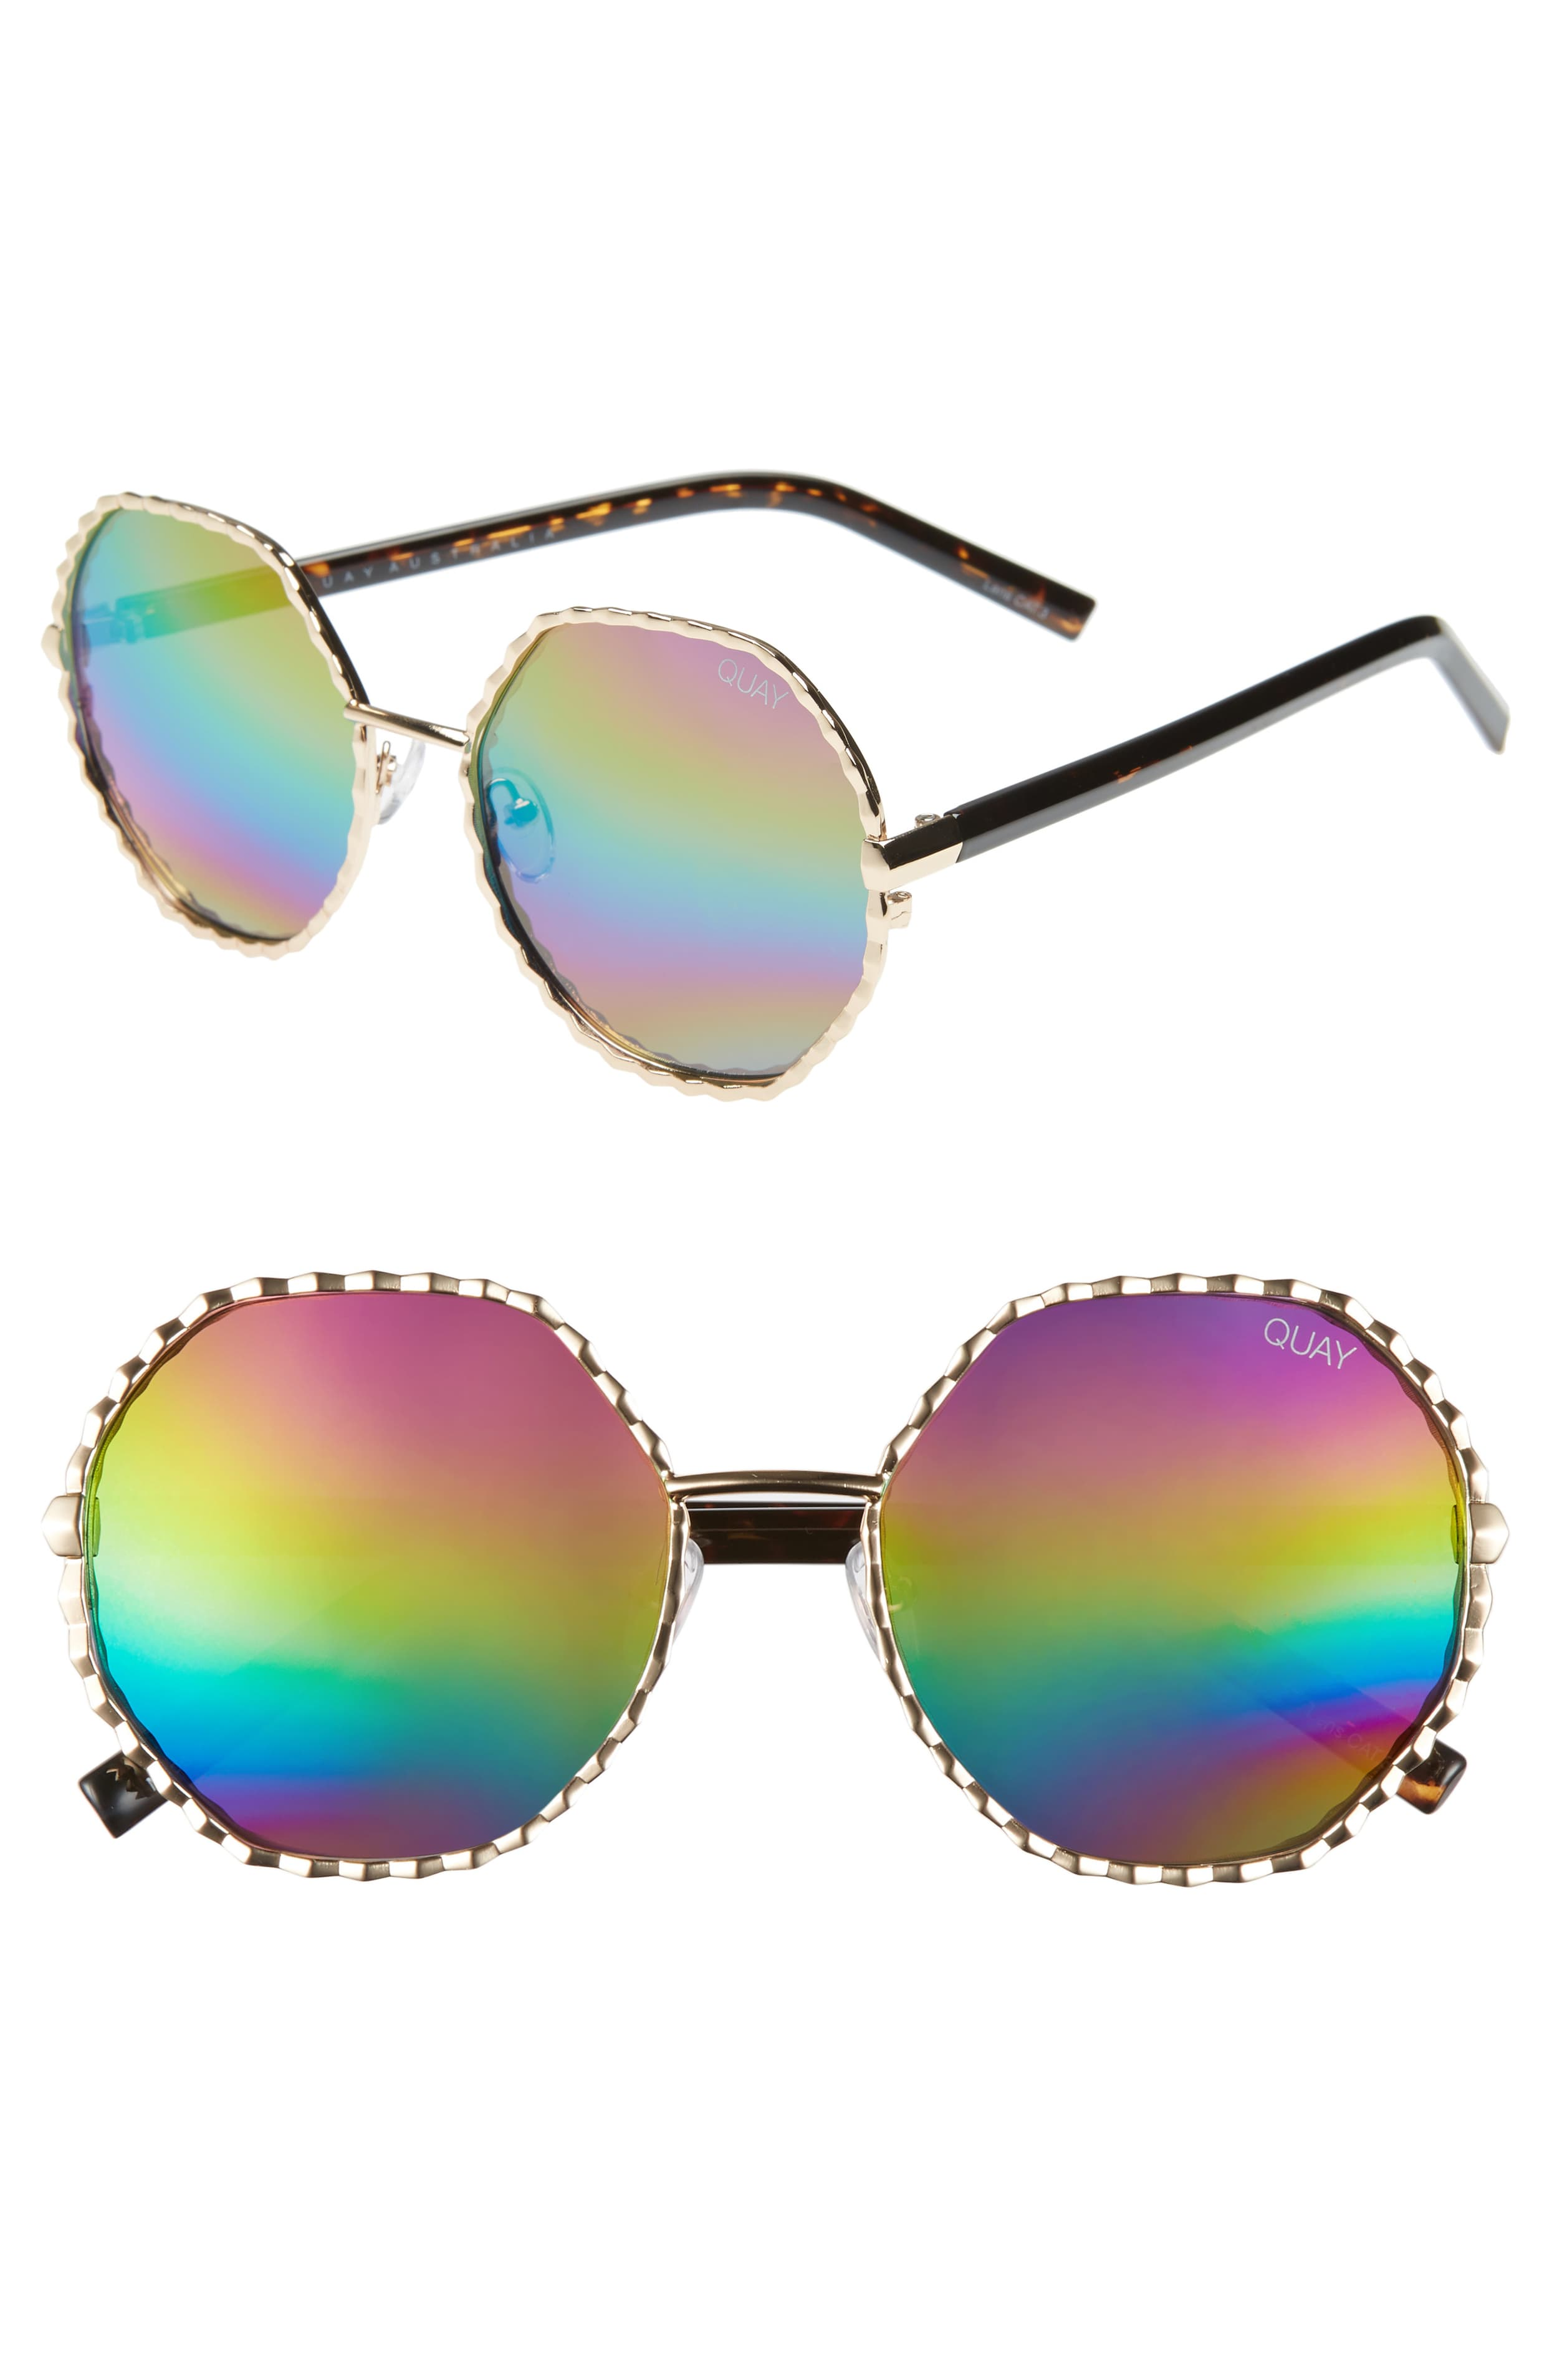 Make your look effortlessly boho-chic in polished shades featuring textured round frames that playfully glint in the sun.{ } Kylie Jenner ain't got nothin on you boo. Price $60 (Image: Nordstrom){ }